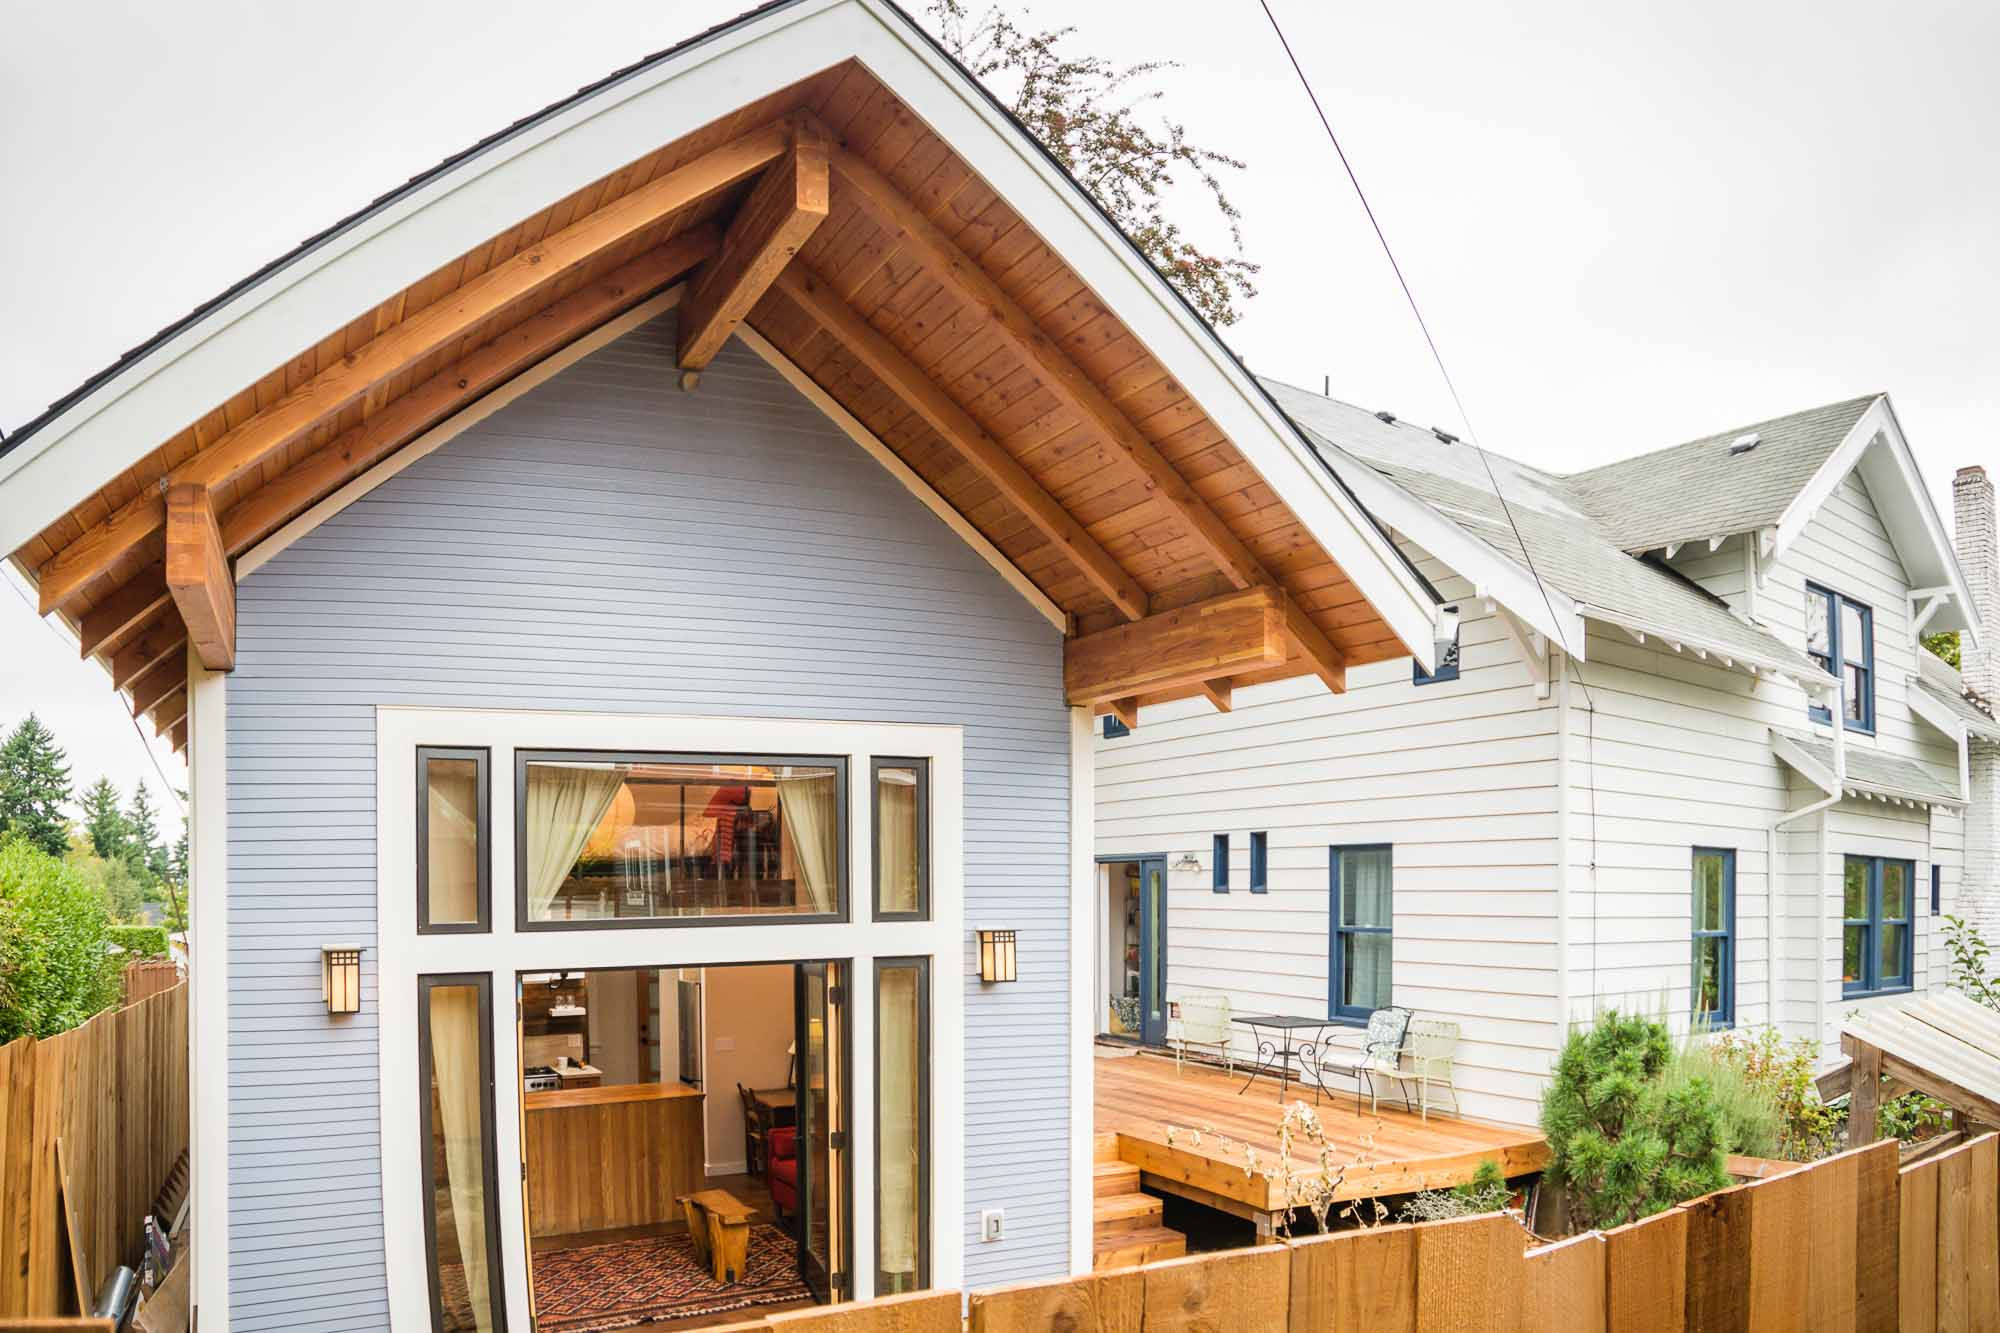 Build small live large portland s accessory dwelling for Accessory dwelling unit designs